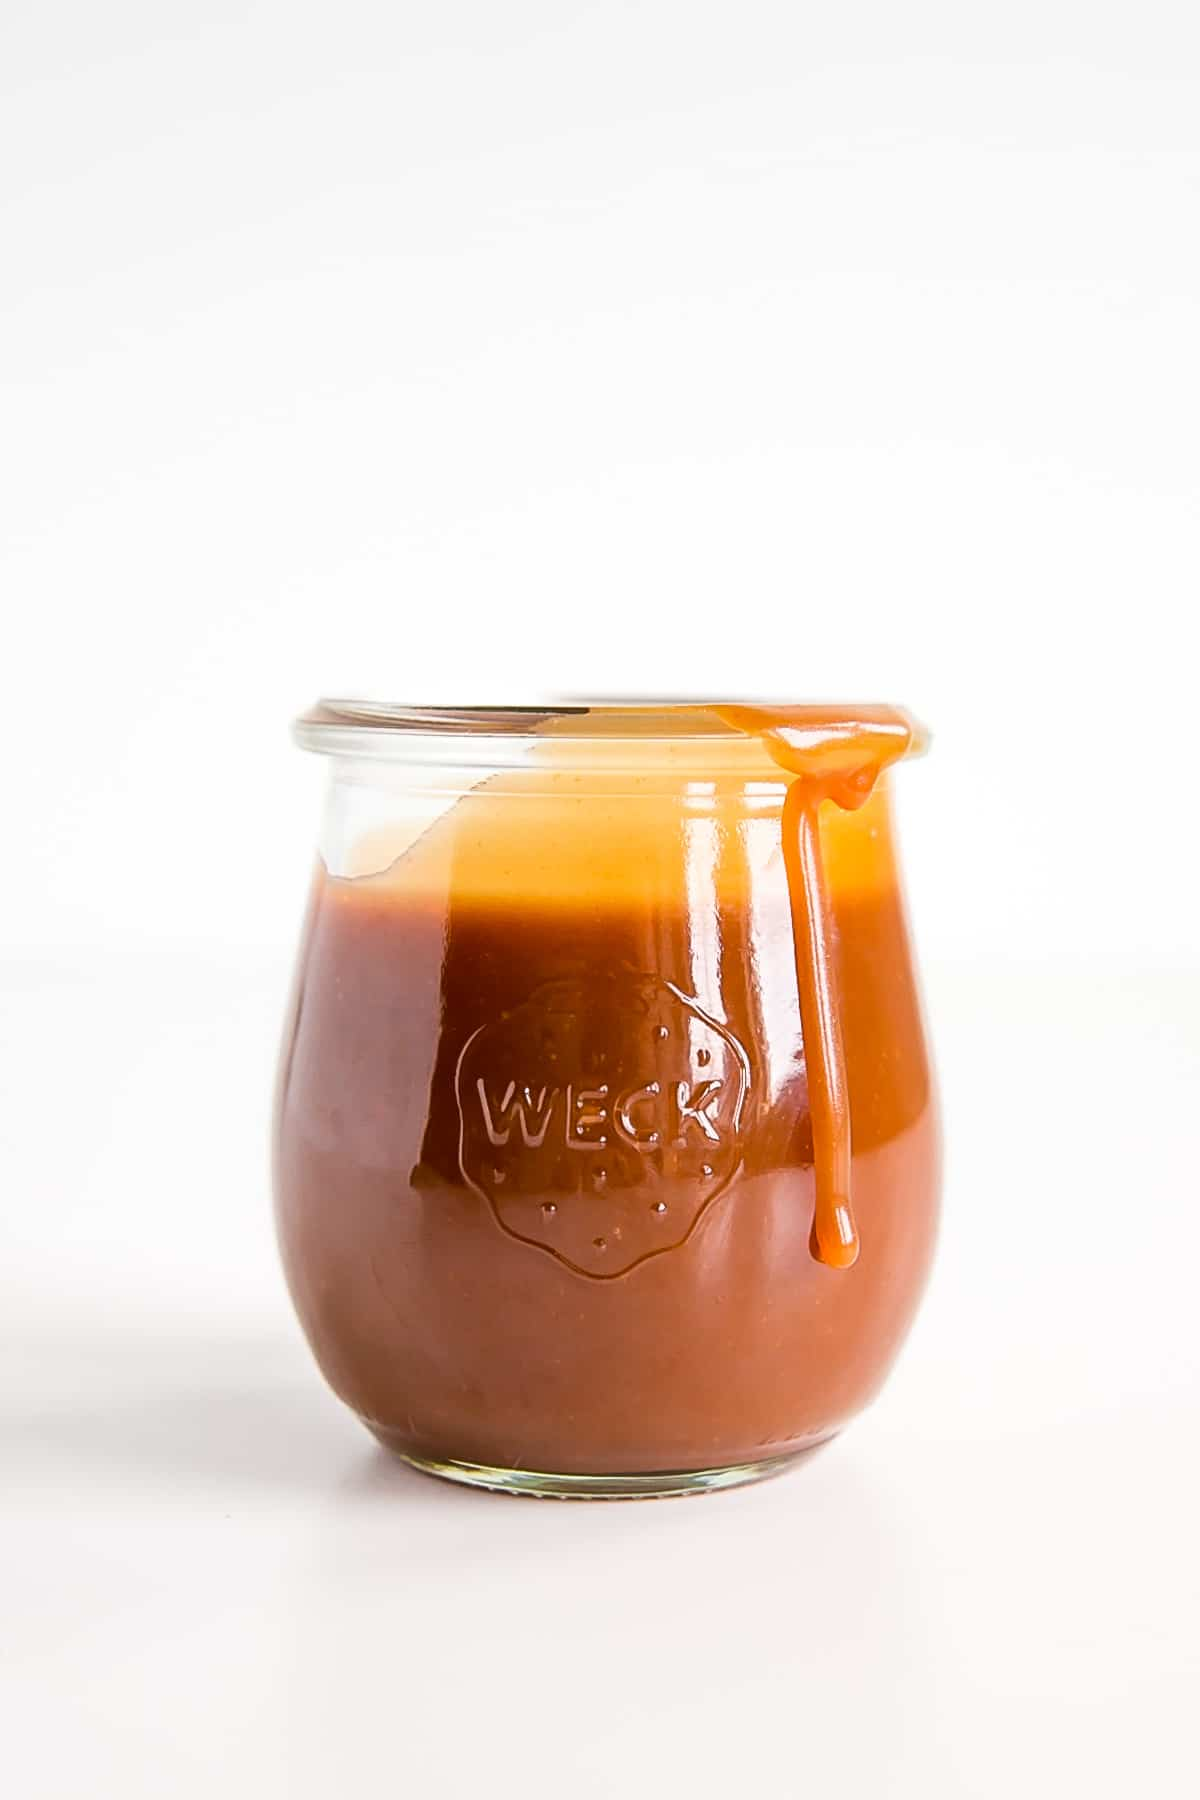 Homemade caramel sauce in a jar